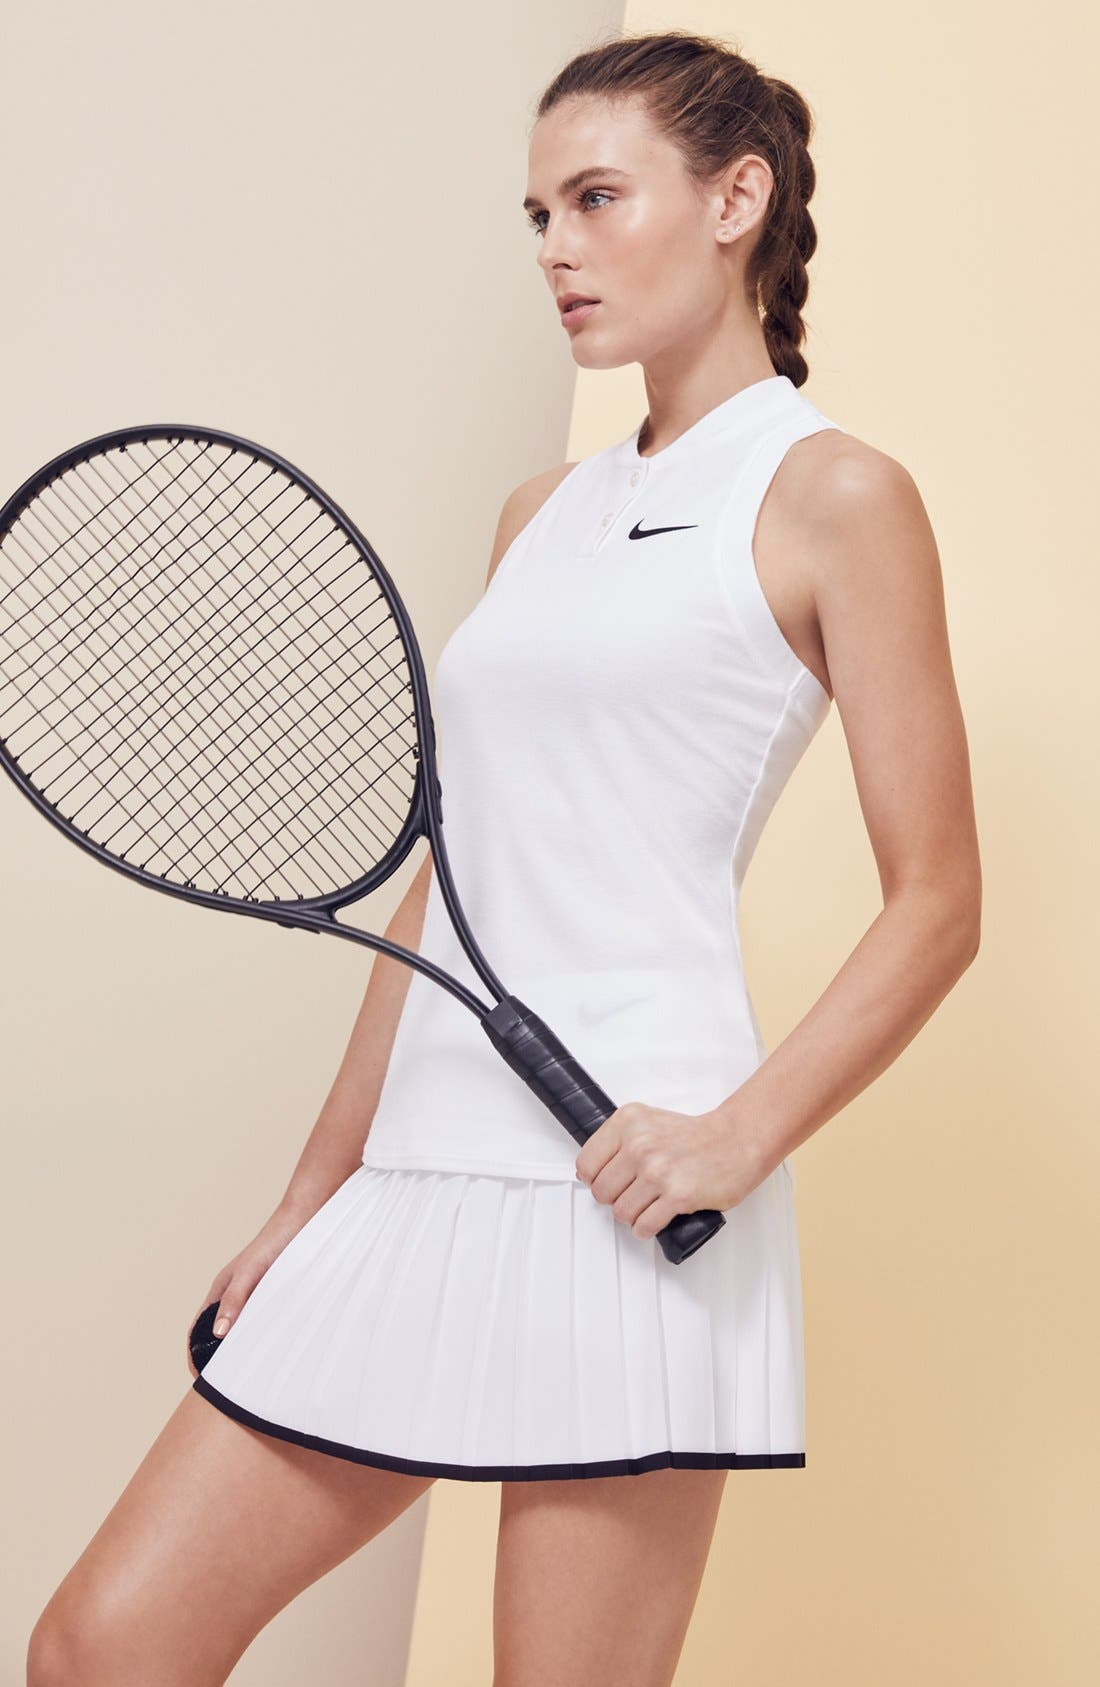 'Victory' Pleat Dri-FIT Tennis Skirt,                             Alternate thumbnail 8, color,                             430